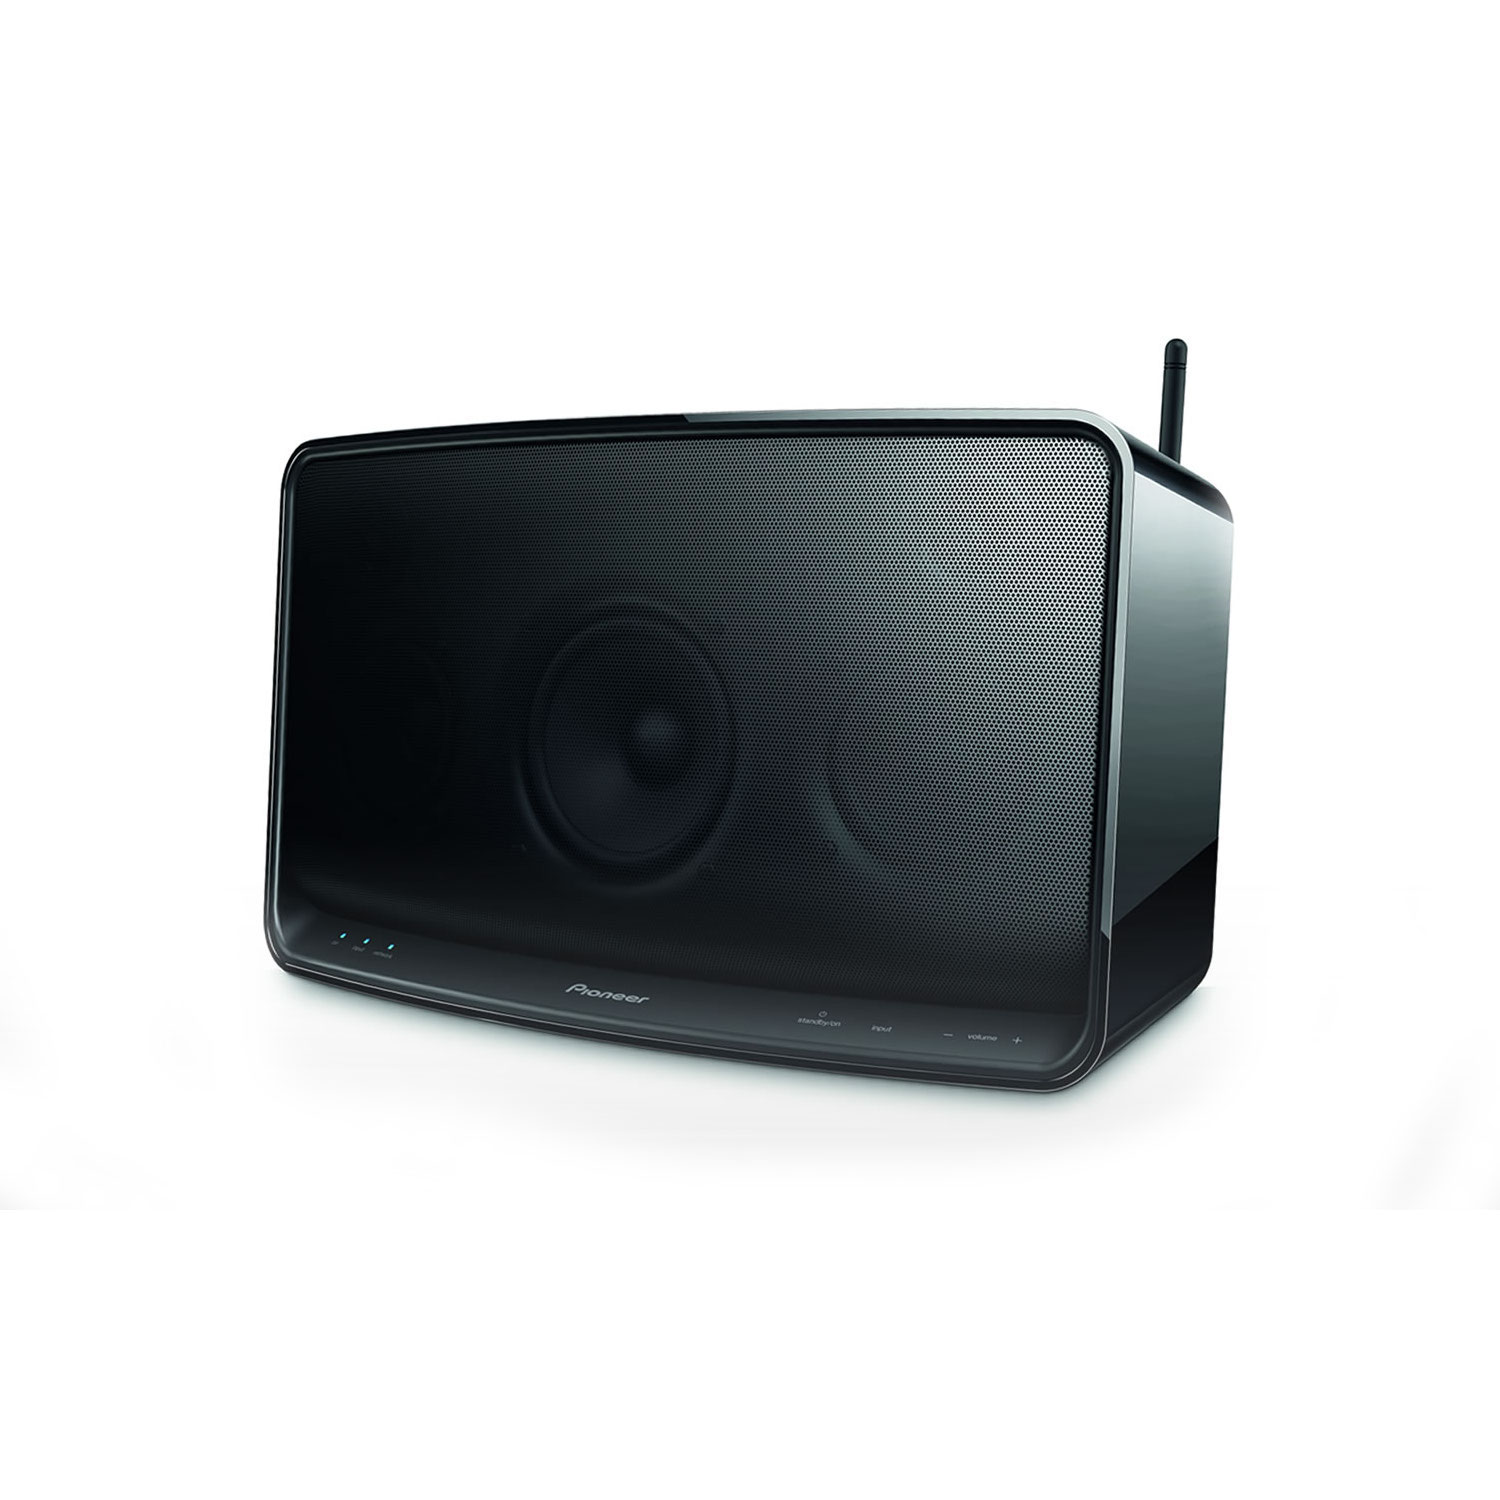 pioneer a4 drahtloser airplay lautsprecher schwarz kaufen bax shop. Black Bedroom Furniture Sets. Home Design Ideas